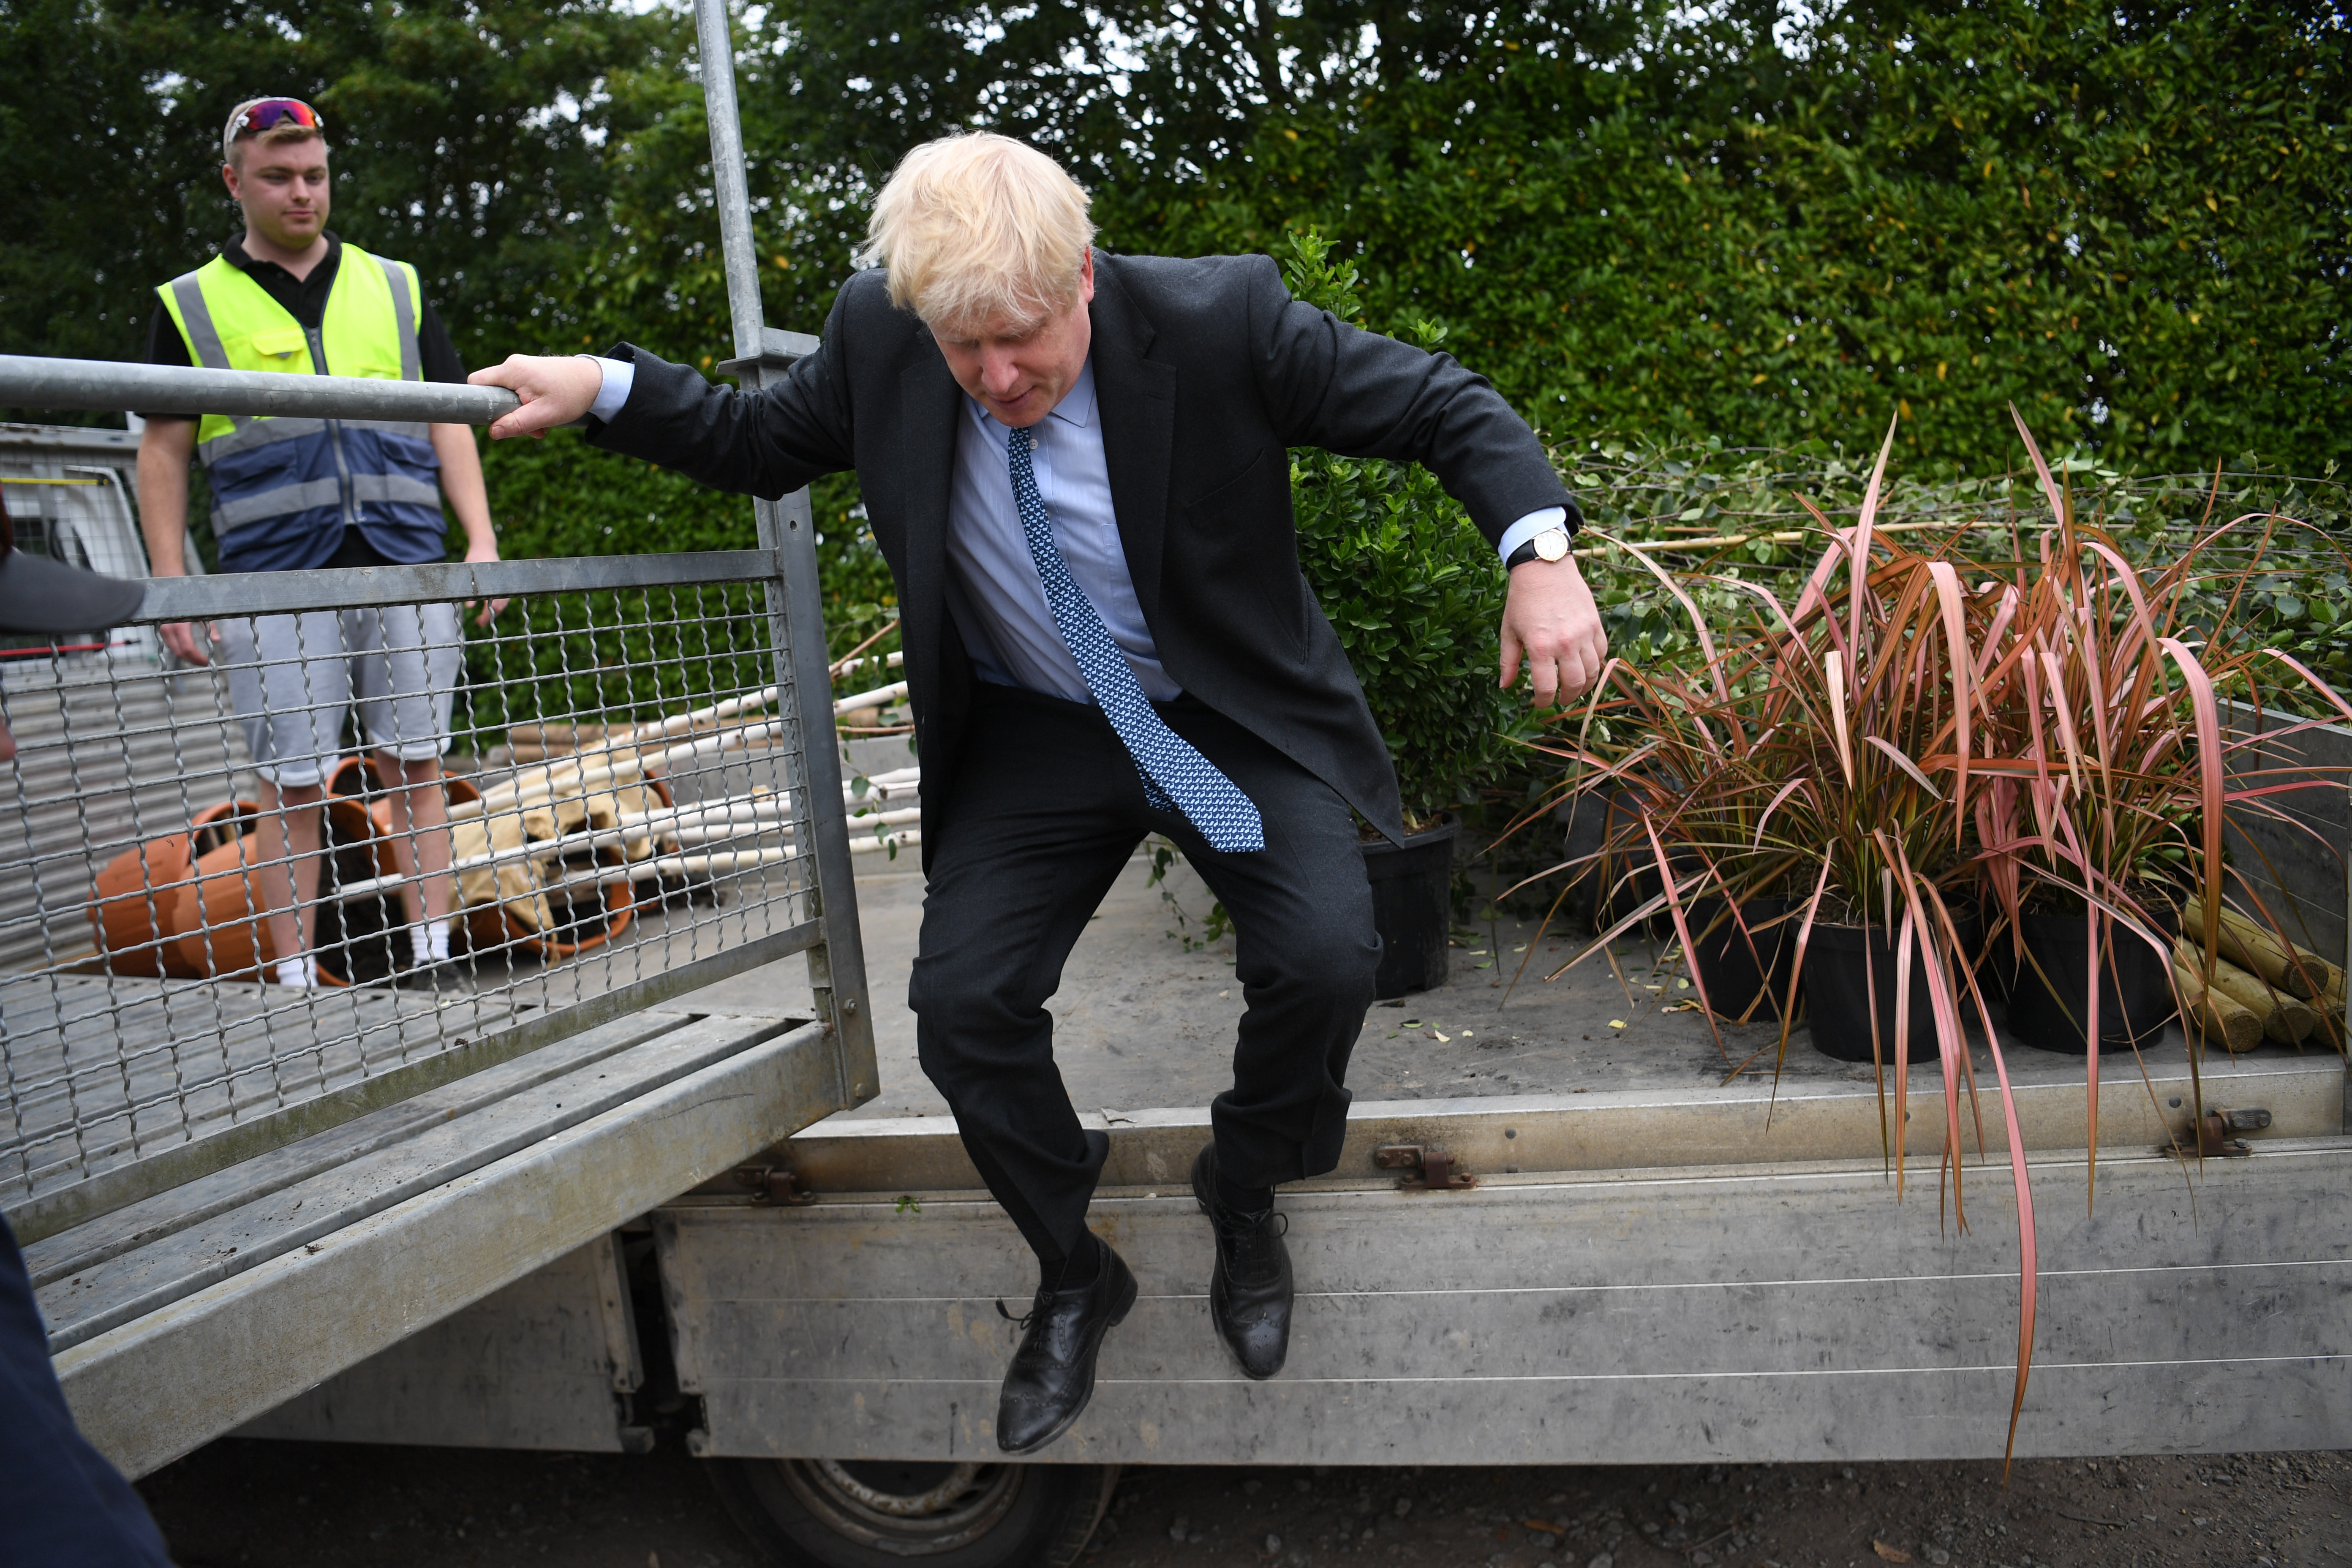 Conservative Party leadership candidate Boris Johnson jumps down from a trailer during a visit to King & Co tree nursery, in Braintree, Essex, ahead of the Tory leadership hustings in Colchester, Essex.